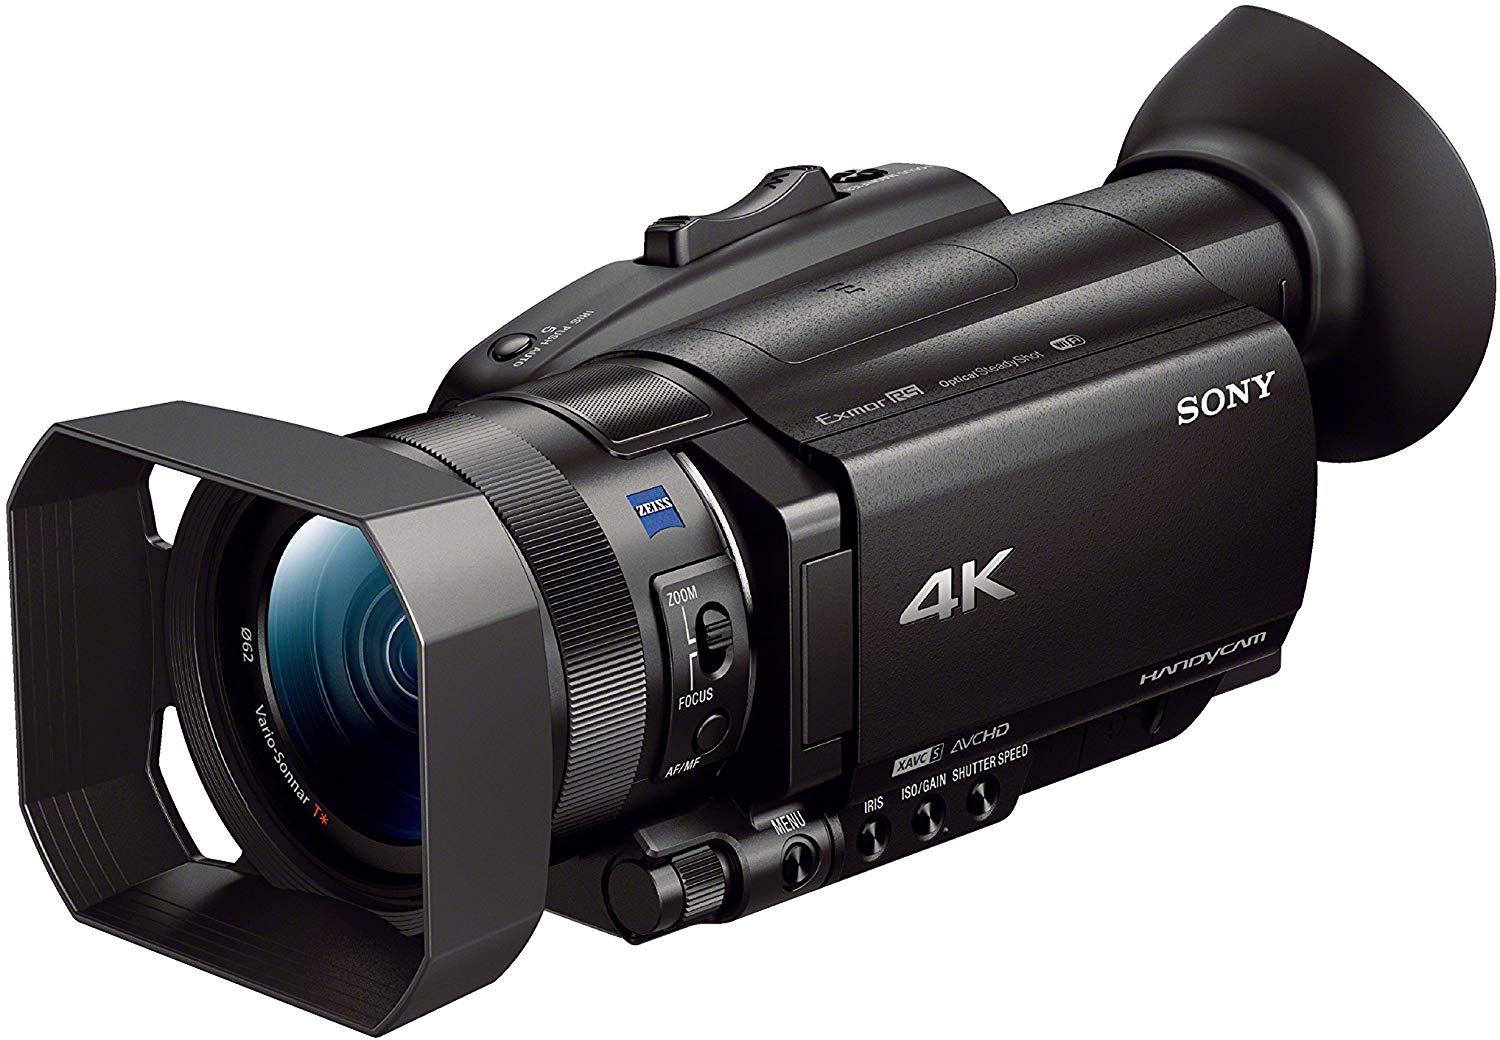 Sony FDR-AX700 4K HDR Ultra HD Camcorder